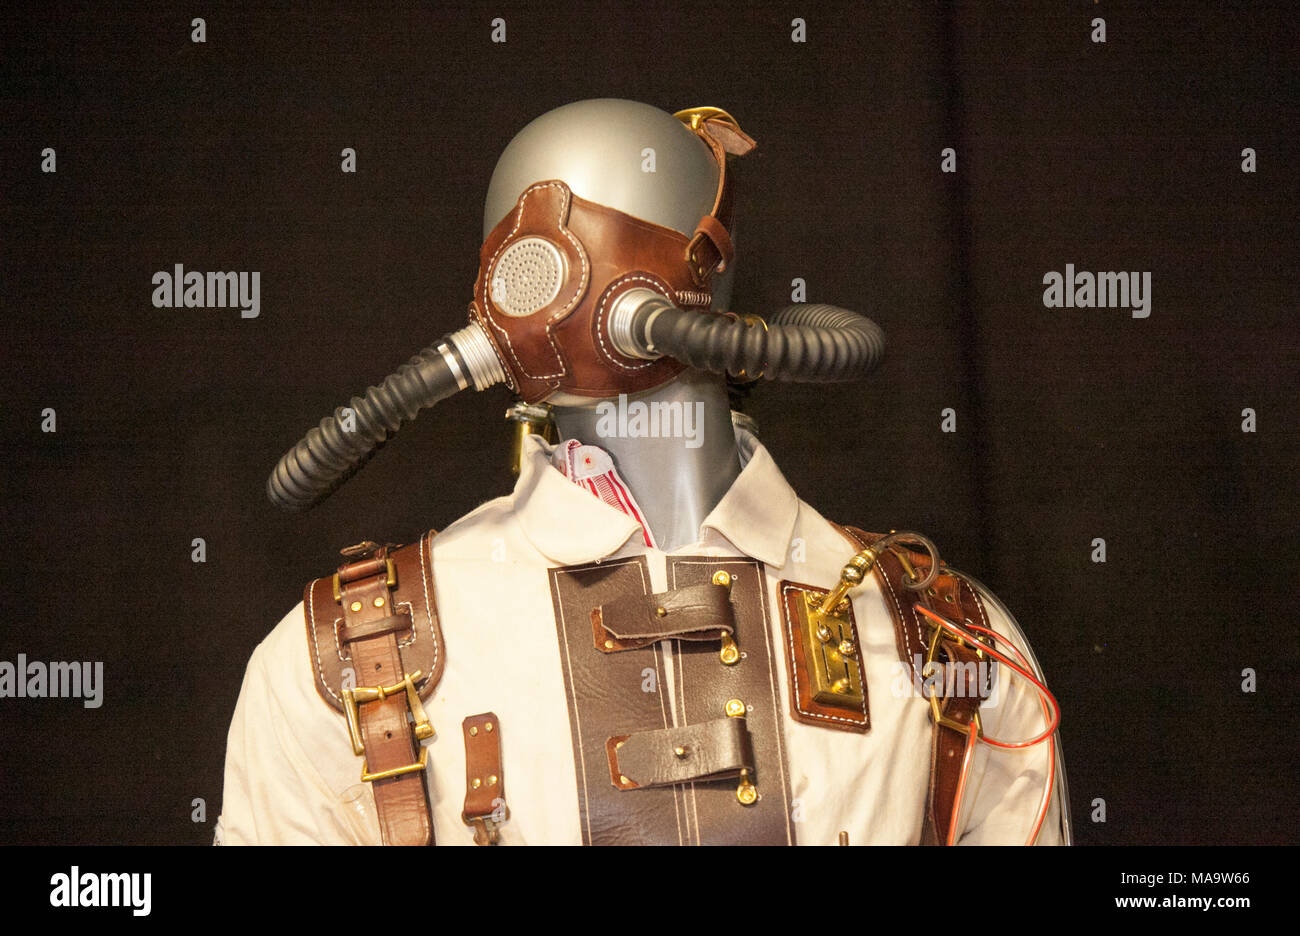 Manchester, UK 31th March 2018.  Post apocalyptic Weekend at the Asylum, the Planet's largest steampunk festival where a City becomes Wasteland Costumes Capital for four days. The Victorian Steampunk Society, teamed up with Manchester's Bowlers Exhibition Centre and the organisers of For the Love of Sci Fi to create a steam punk Expo. Credit: MediaWorldImages/AlamyLiveNews - Stock Image